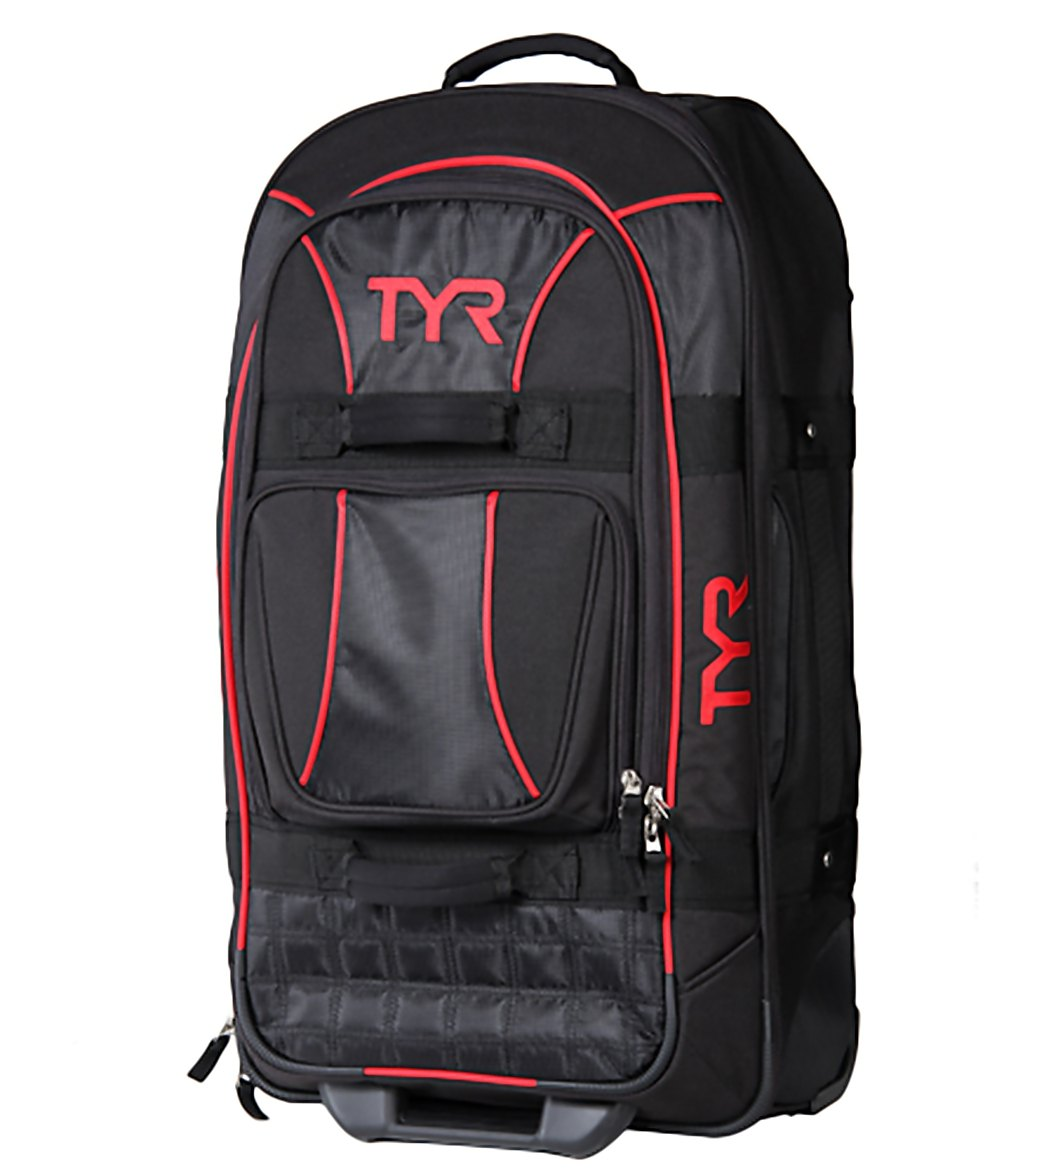 5161a68d1 TYR Large Wheel Luggage at SwimOutlet.com - Free Shipping